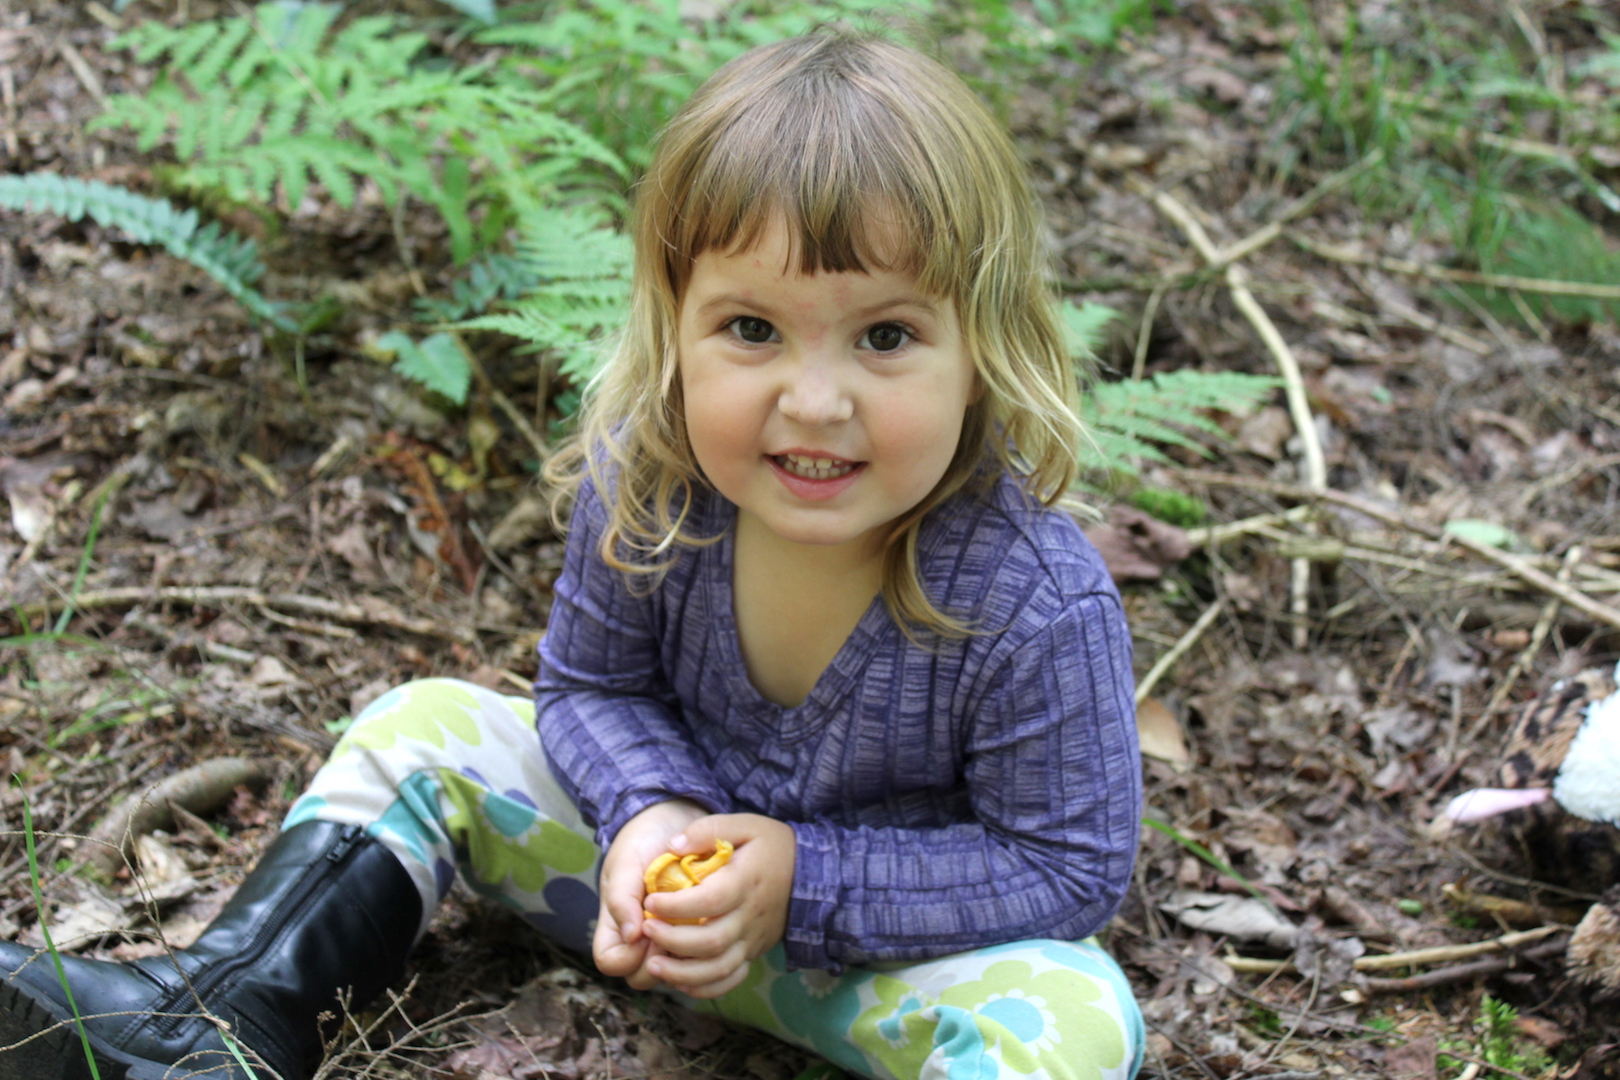 Foraging chanterelles with kids